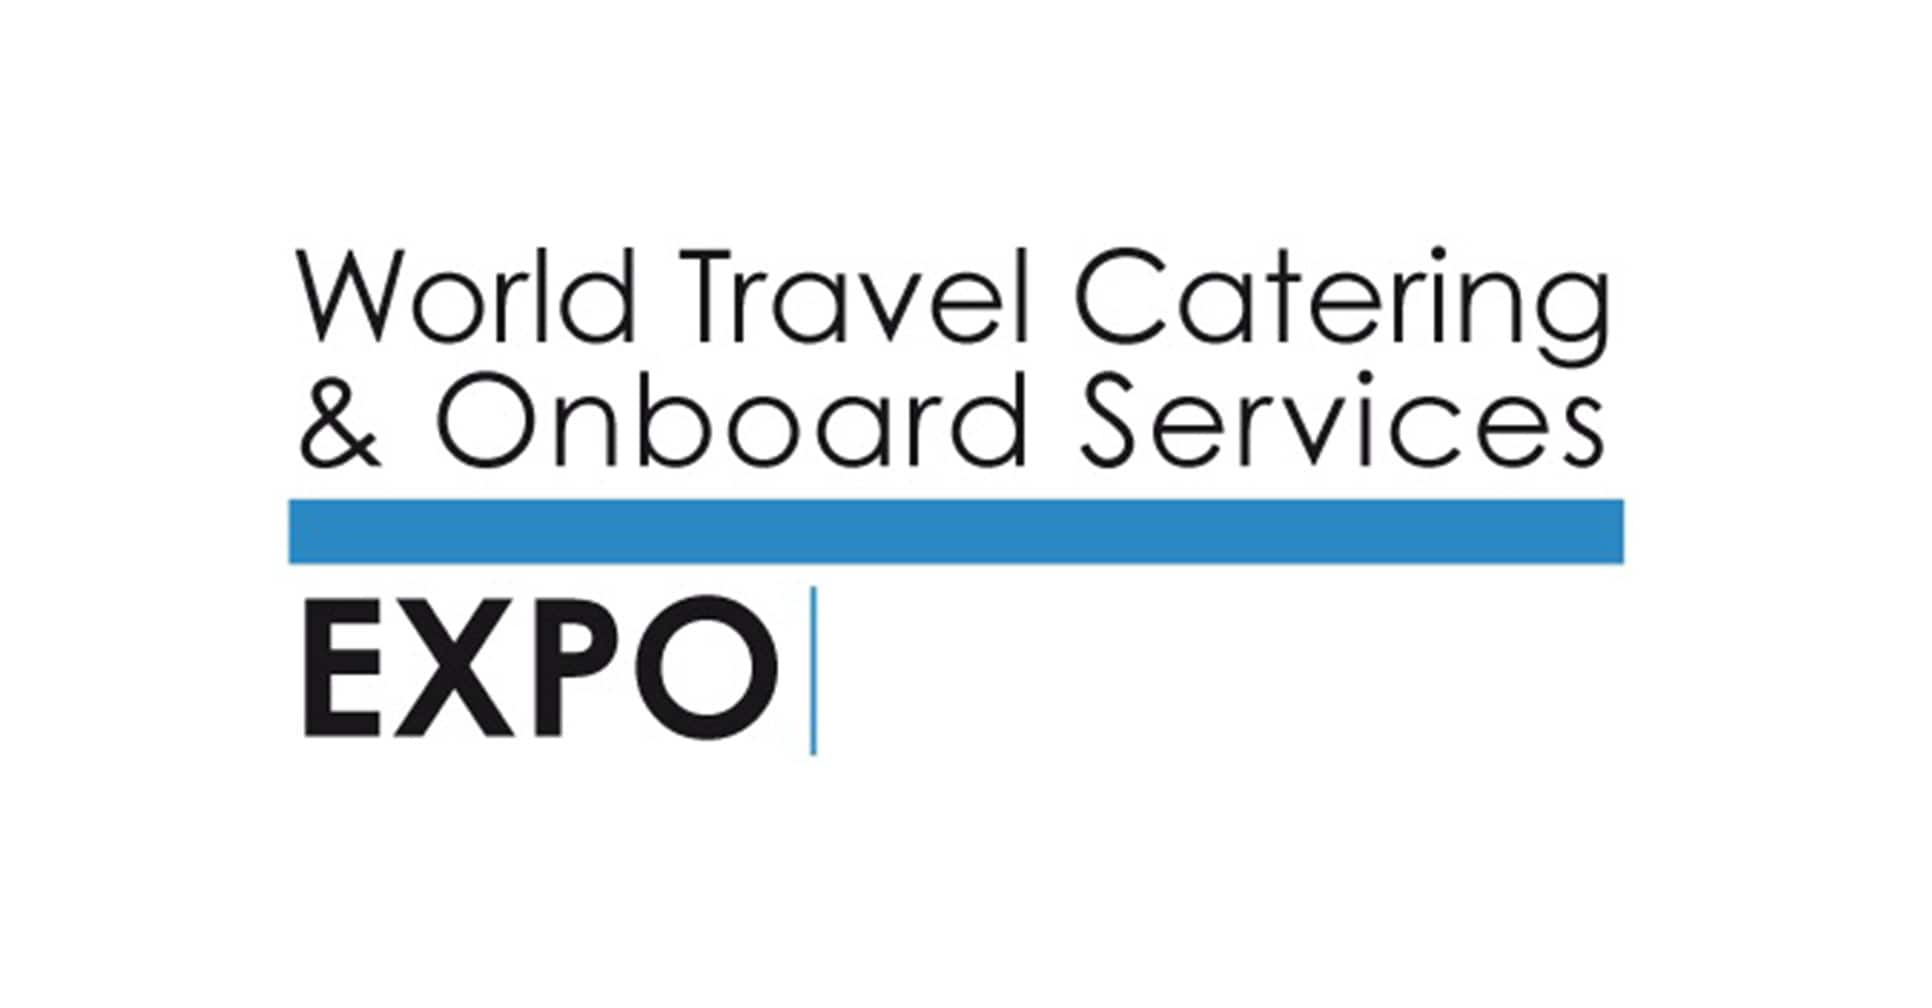 World Travel Catering & Onboard Services